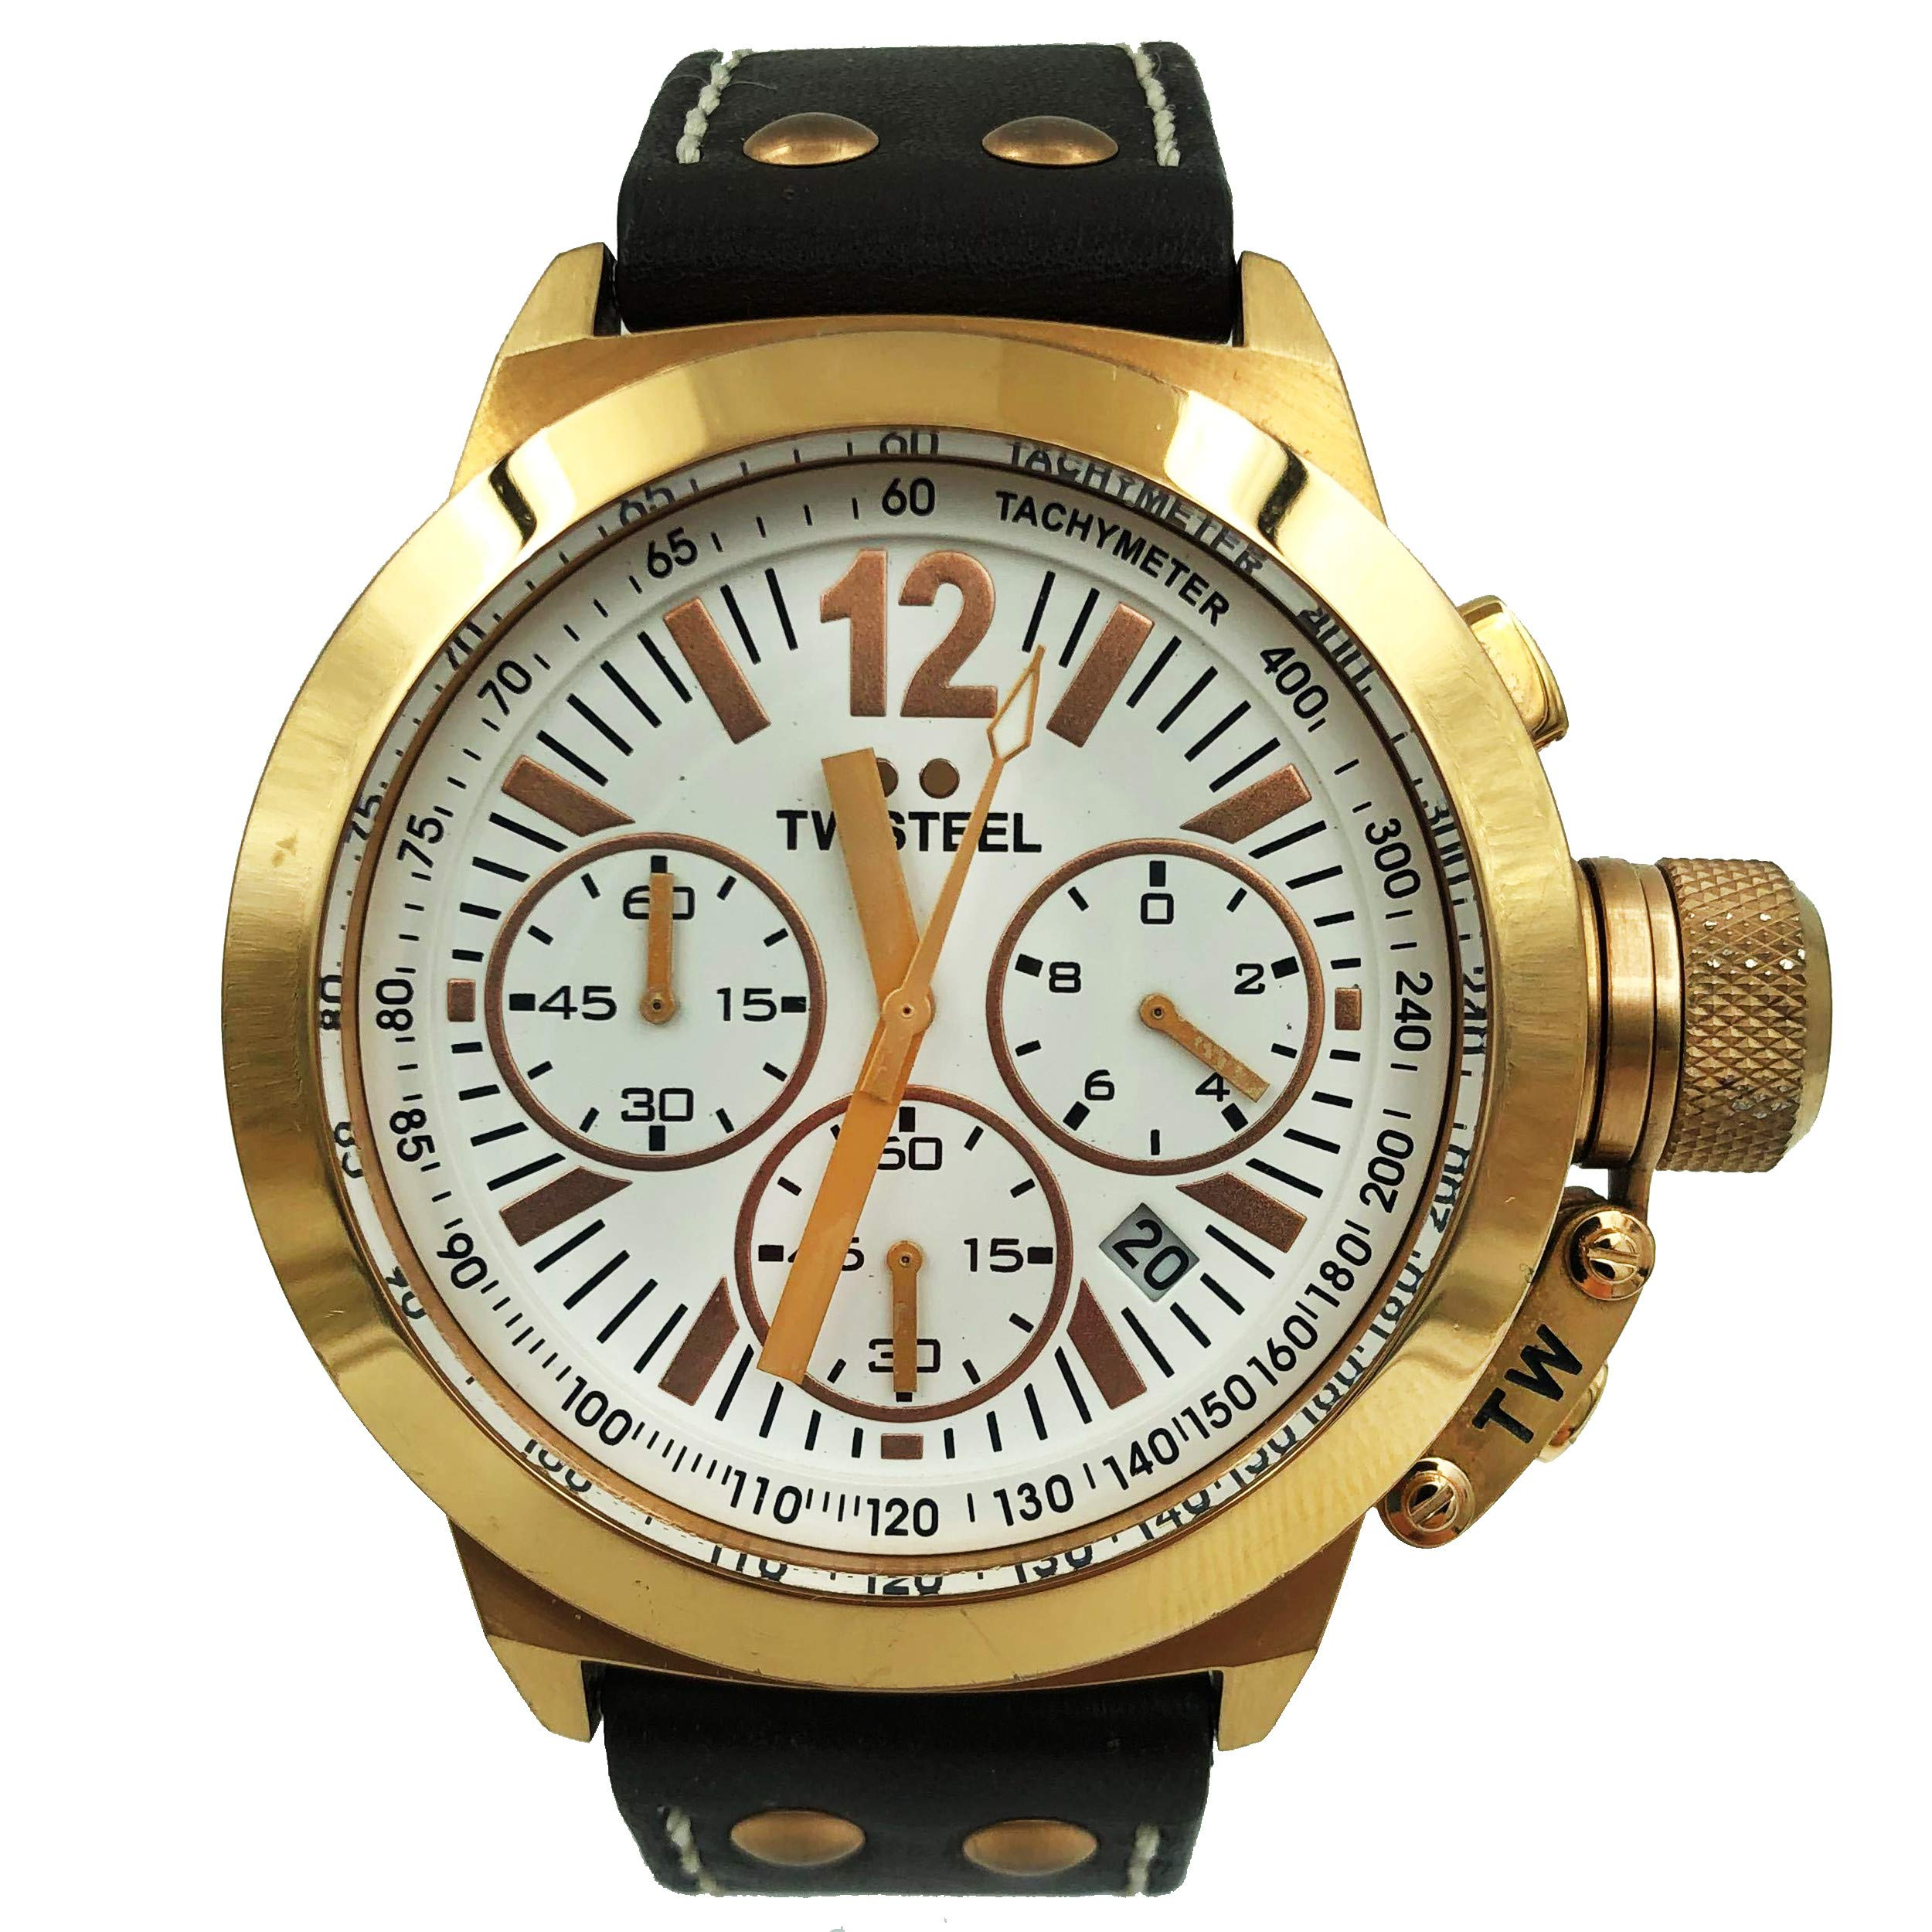 TW Steel CEO Quartz Male Watch CE1019R (Certified Pre-Owned) by TW Steel (Image #1)